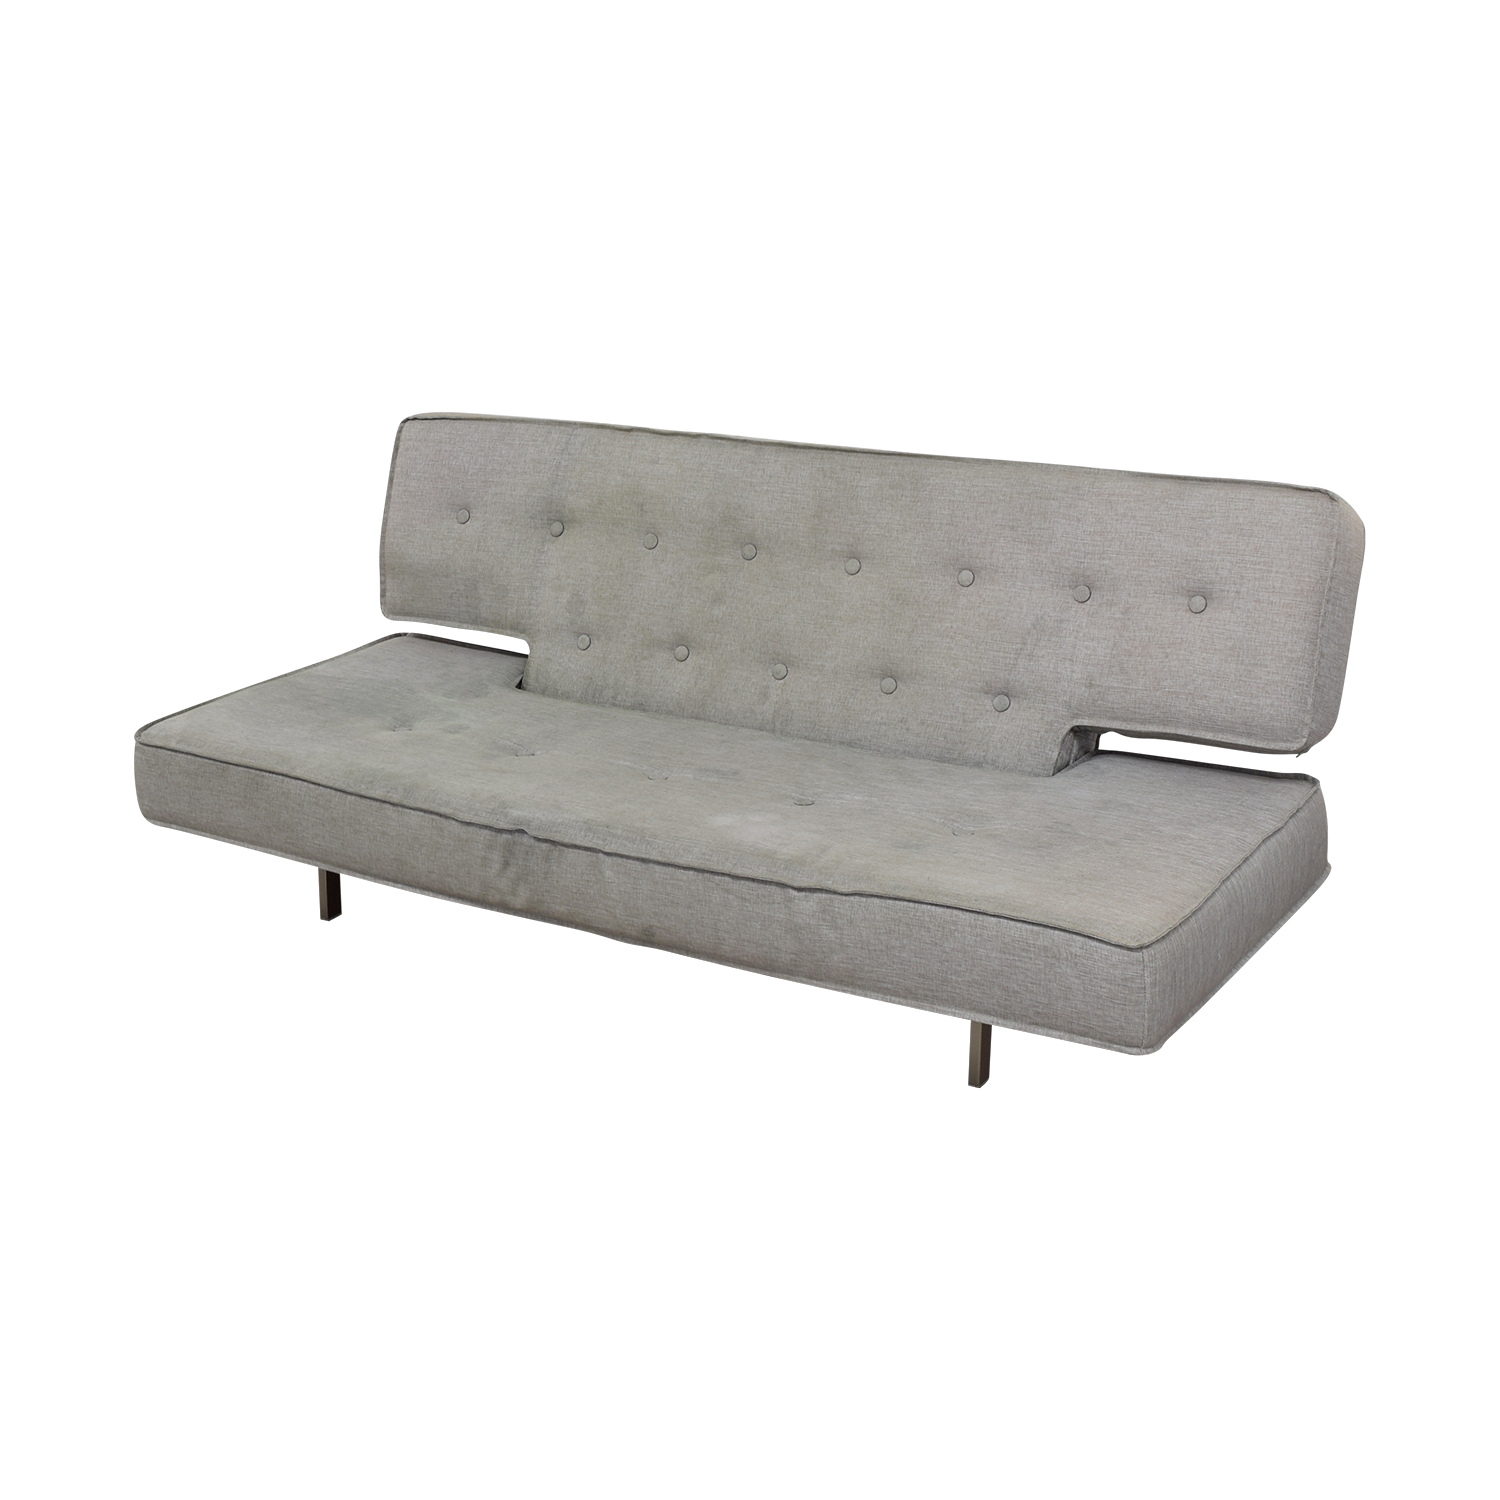 boconcept sleeper sofa review kennedy collection bed seca home co